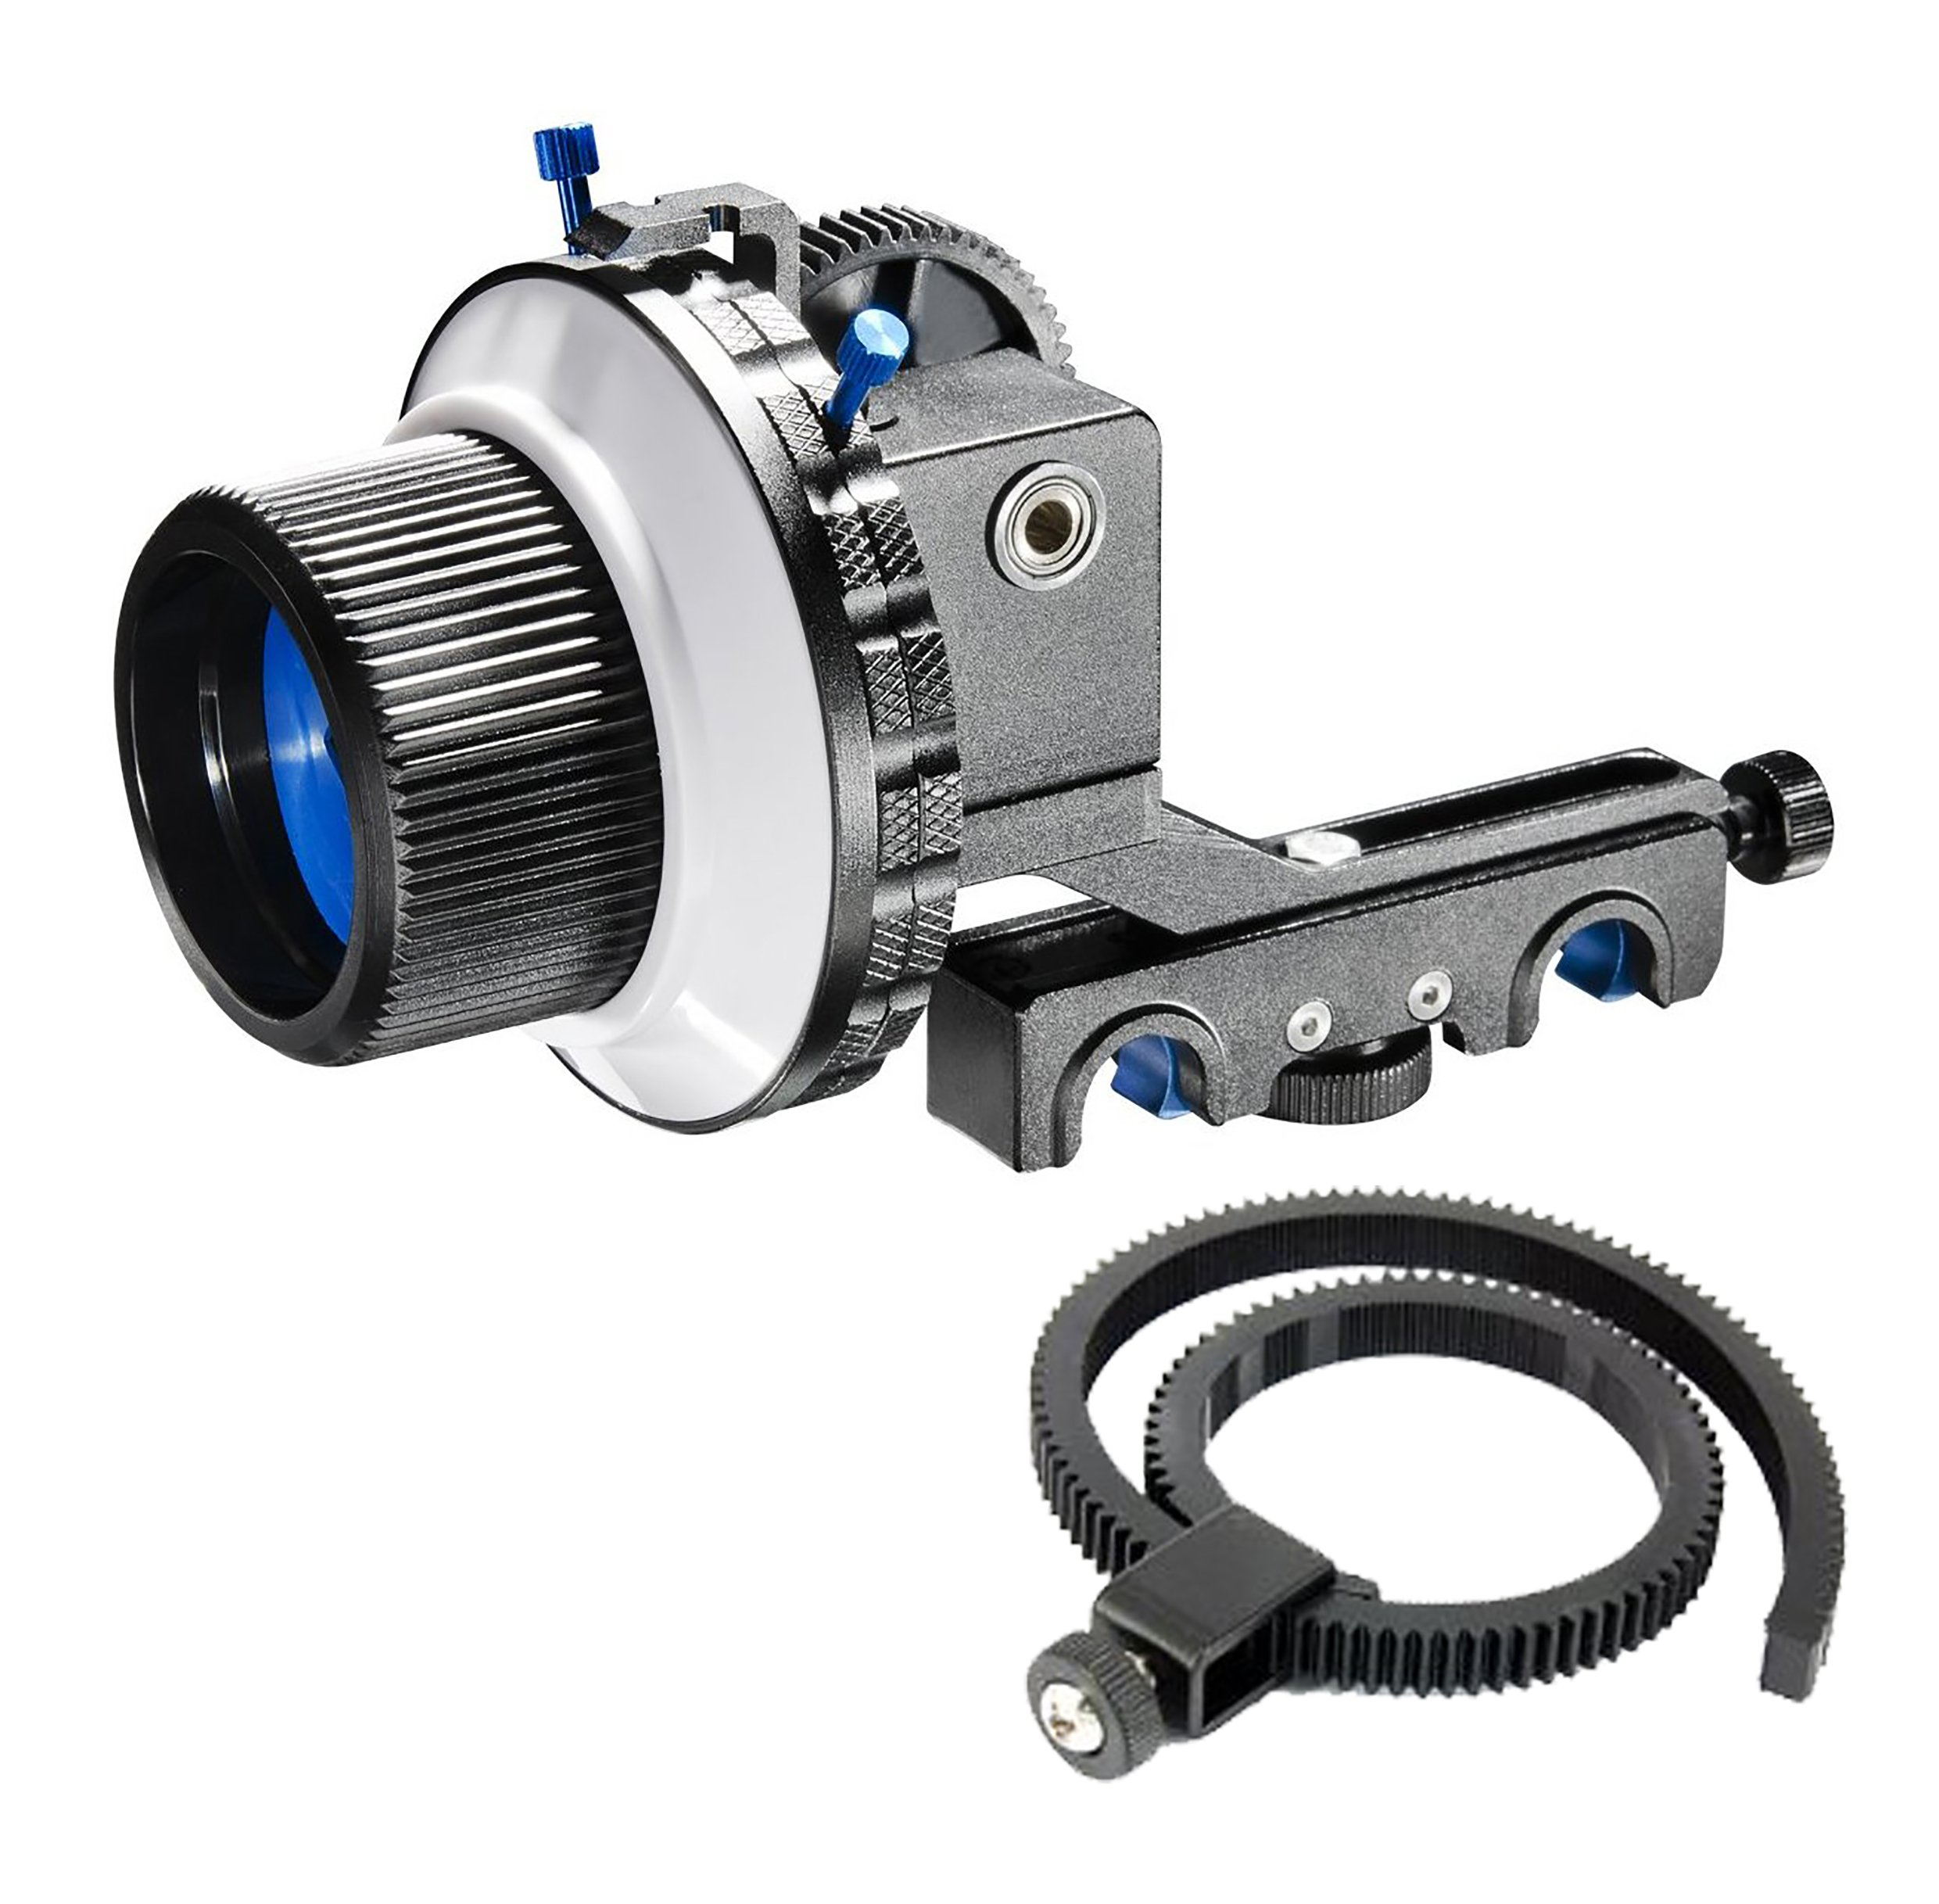 Morros Follow Focus Finder F4 for 15mm Rod Support DSLR and video cameras (F4 With Two Hard Stops) by Morros